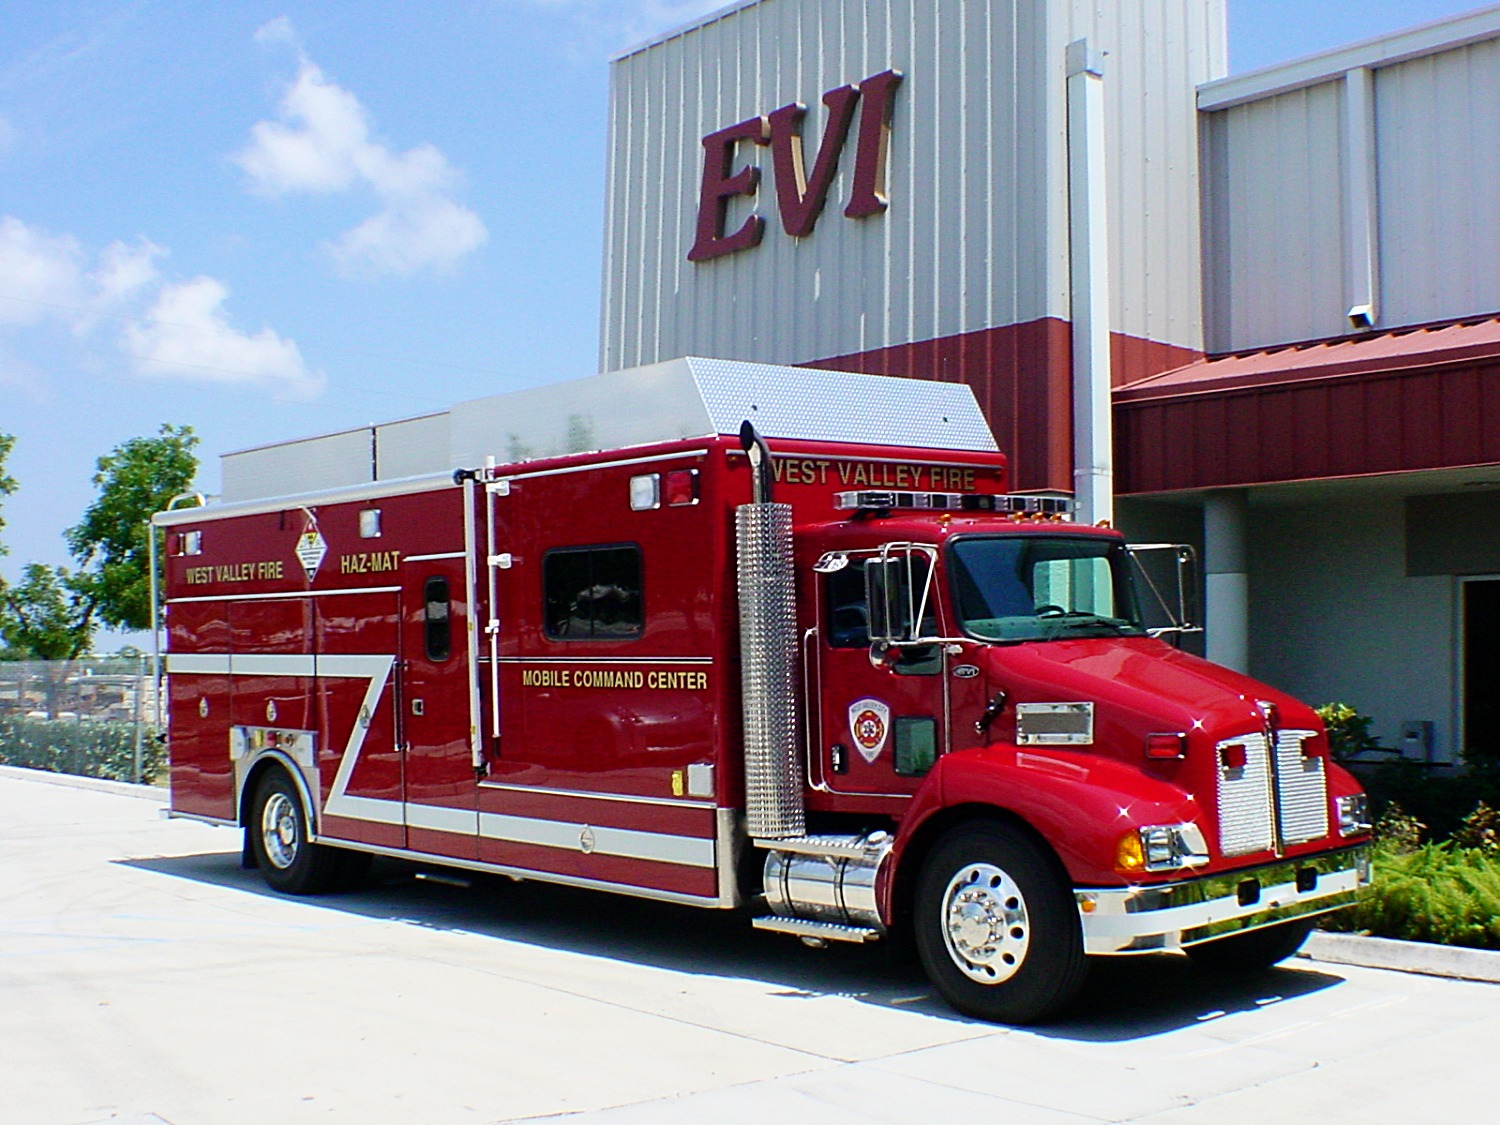 EVI 25-Ft Haz-Mat / Command Response